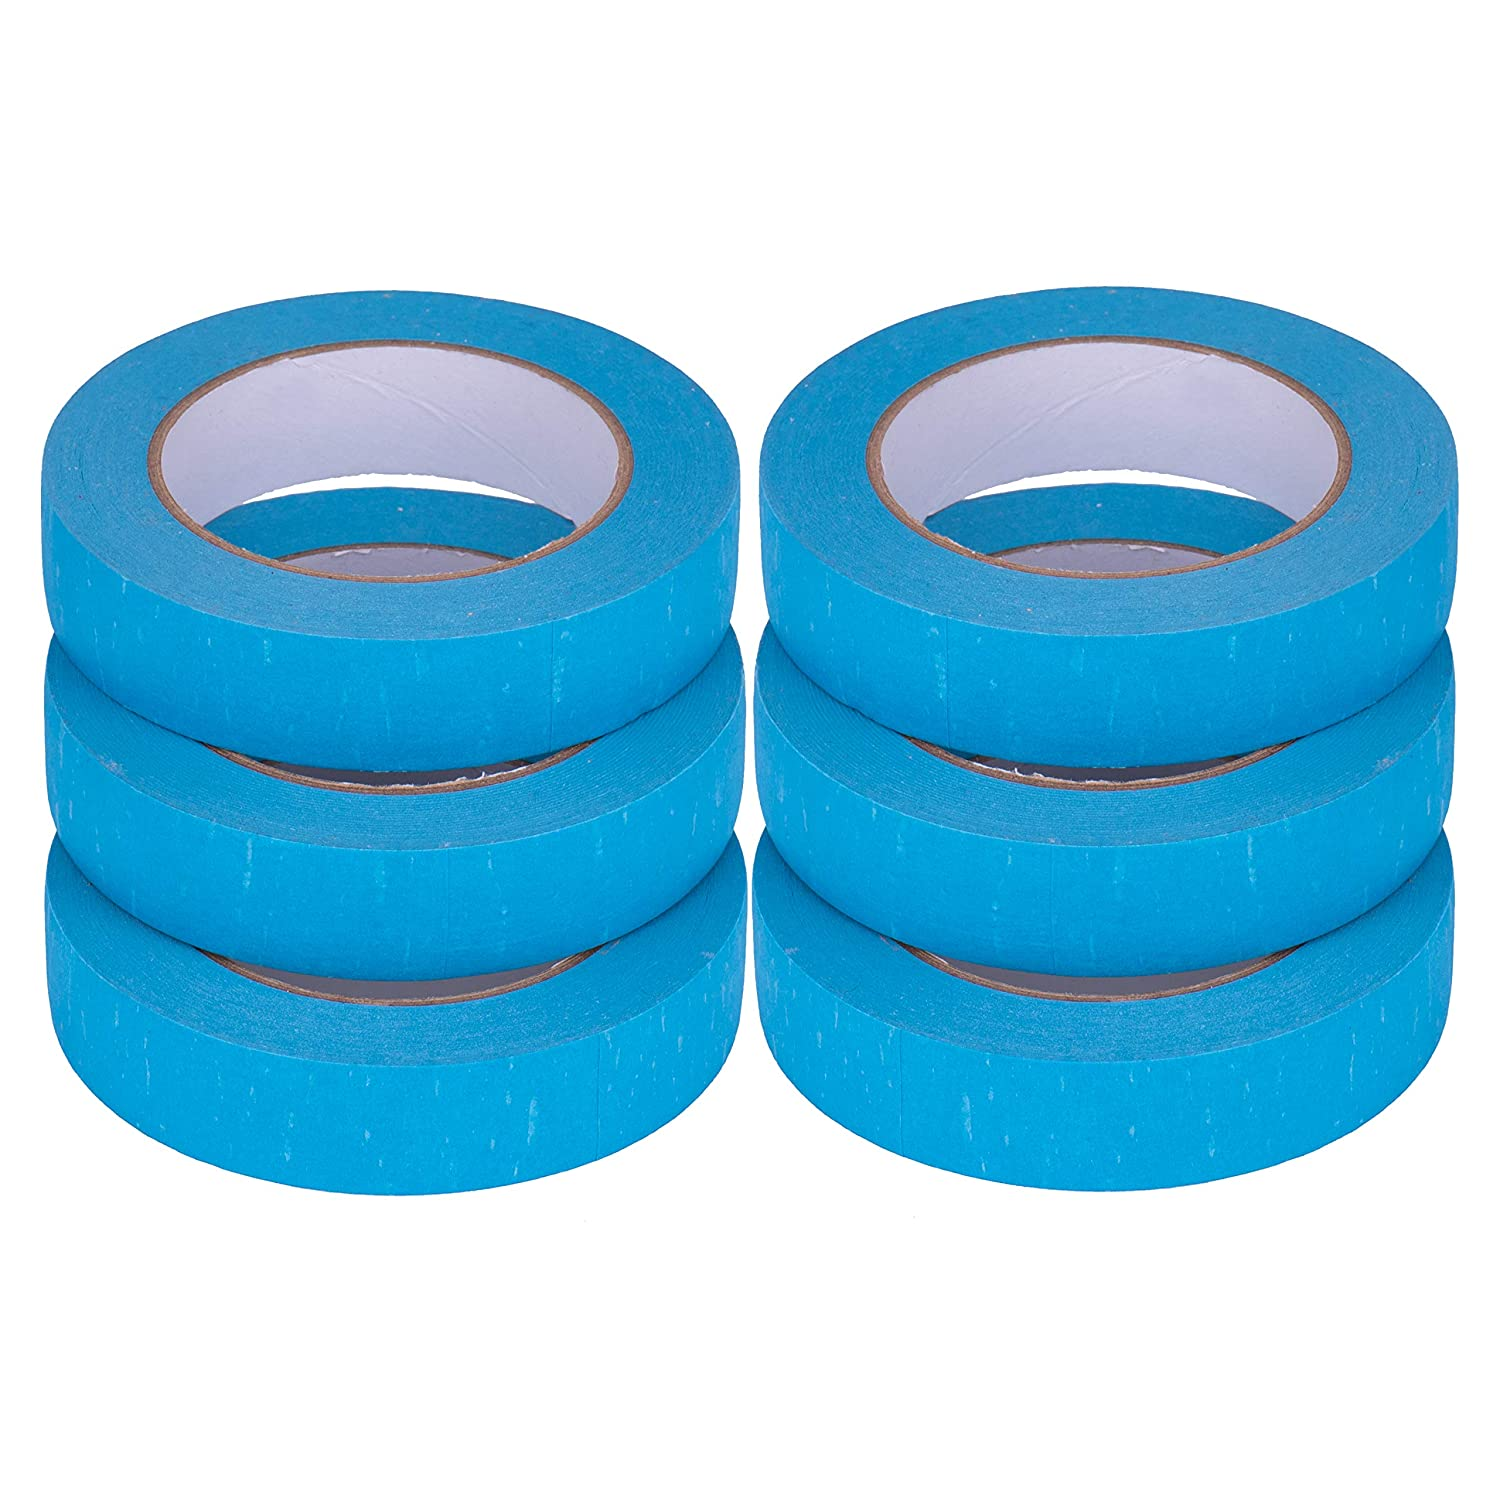 Wall Safe Blue Painters Tape Limited EDITITION Tape Floor No Rip or Residue Car 2 Marker 6 Pack 14 Day Removable Tool Floor Safe- Artist Packing Paint Tape for Tiles